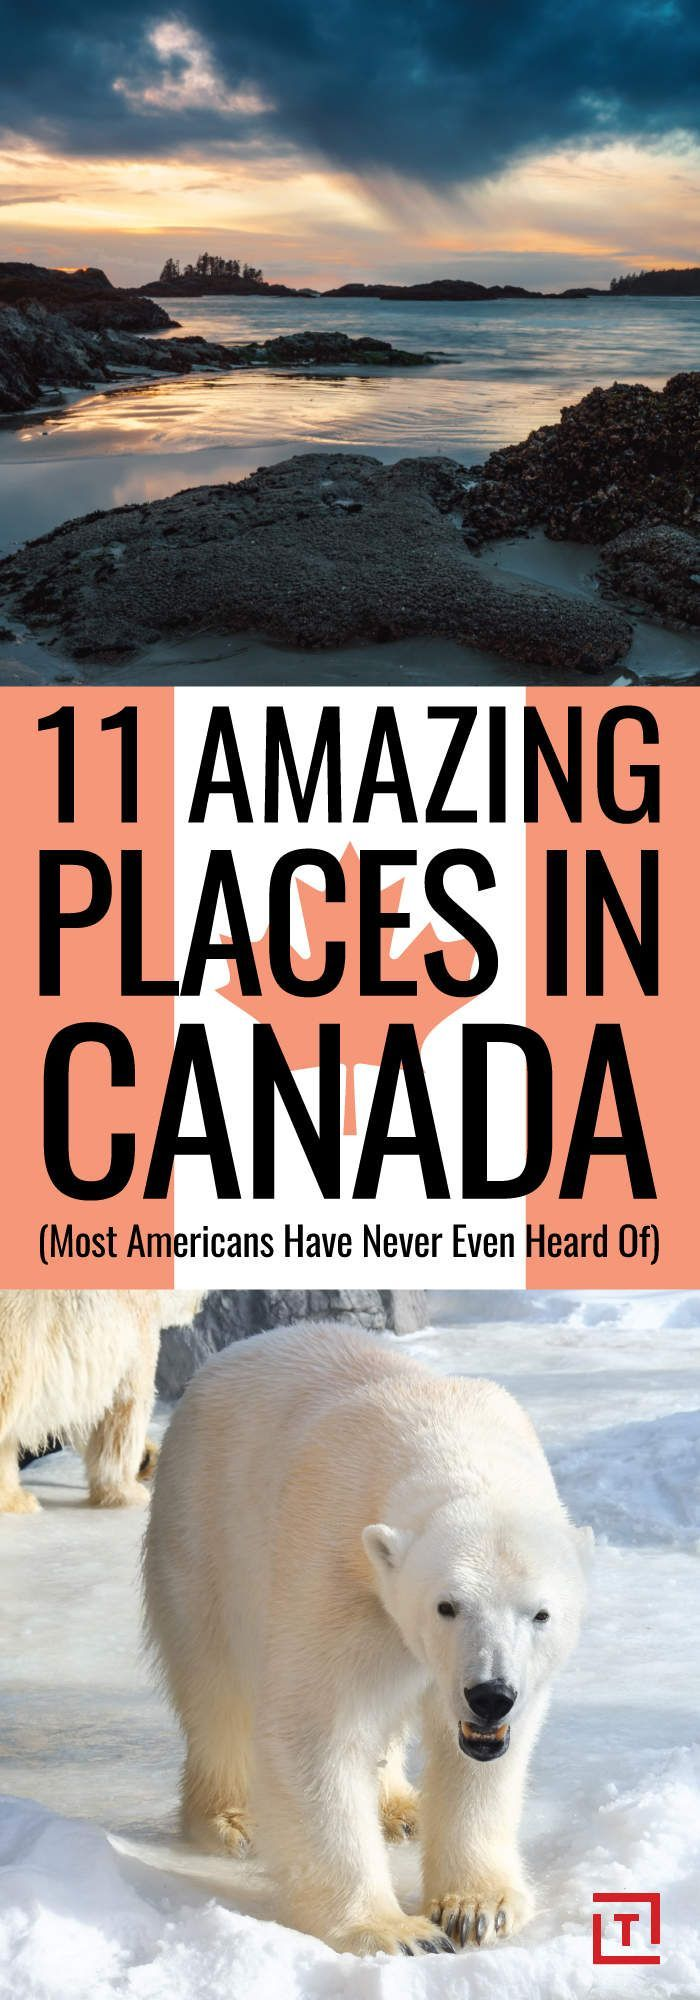 11 Amazing Places in Canada Most Americans Have Never Even Heard Of